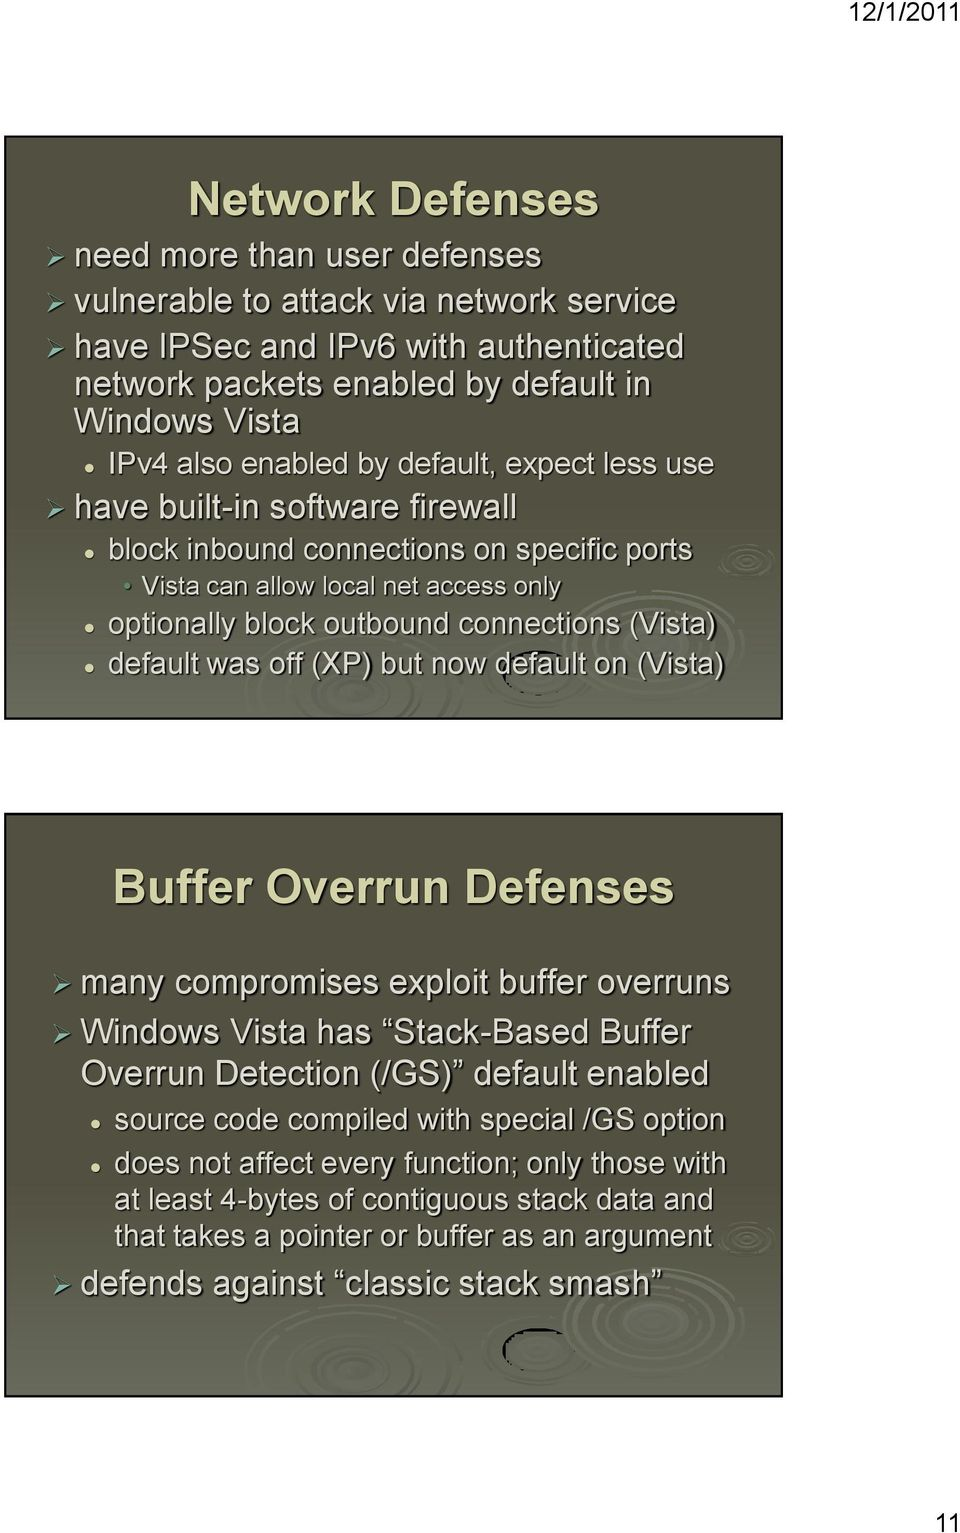 off (XP) but now default on (Vista) Buffer Overrun Defenses many compromises exploit buffer overruns Windows Vista has Stack-Based Buffer Overrun Detection (/GS) default enabled source code compiled